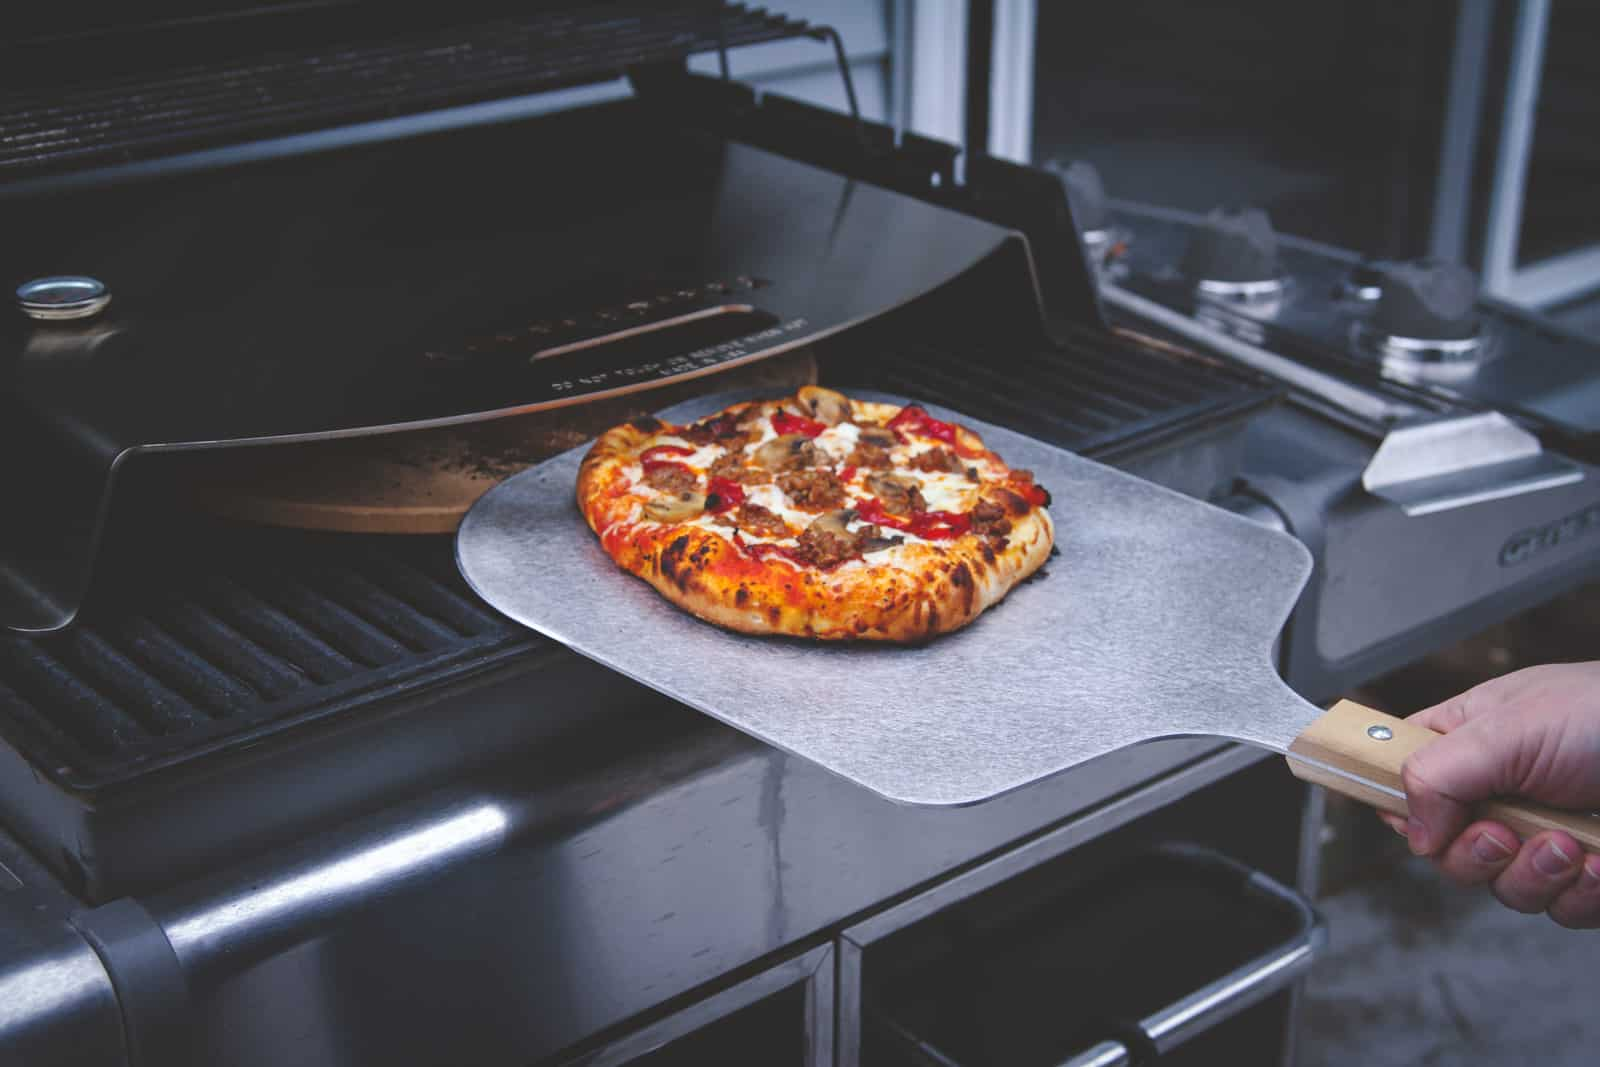 The best pizza made with a KettlePizza Gas Pro